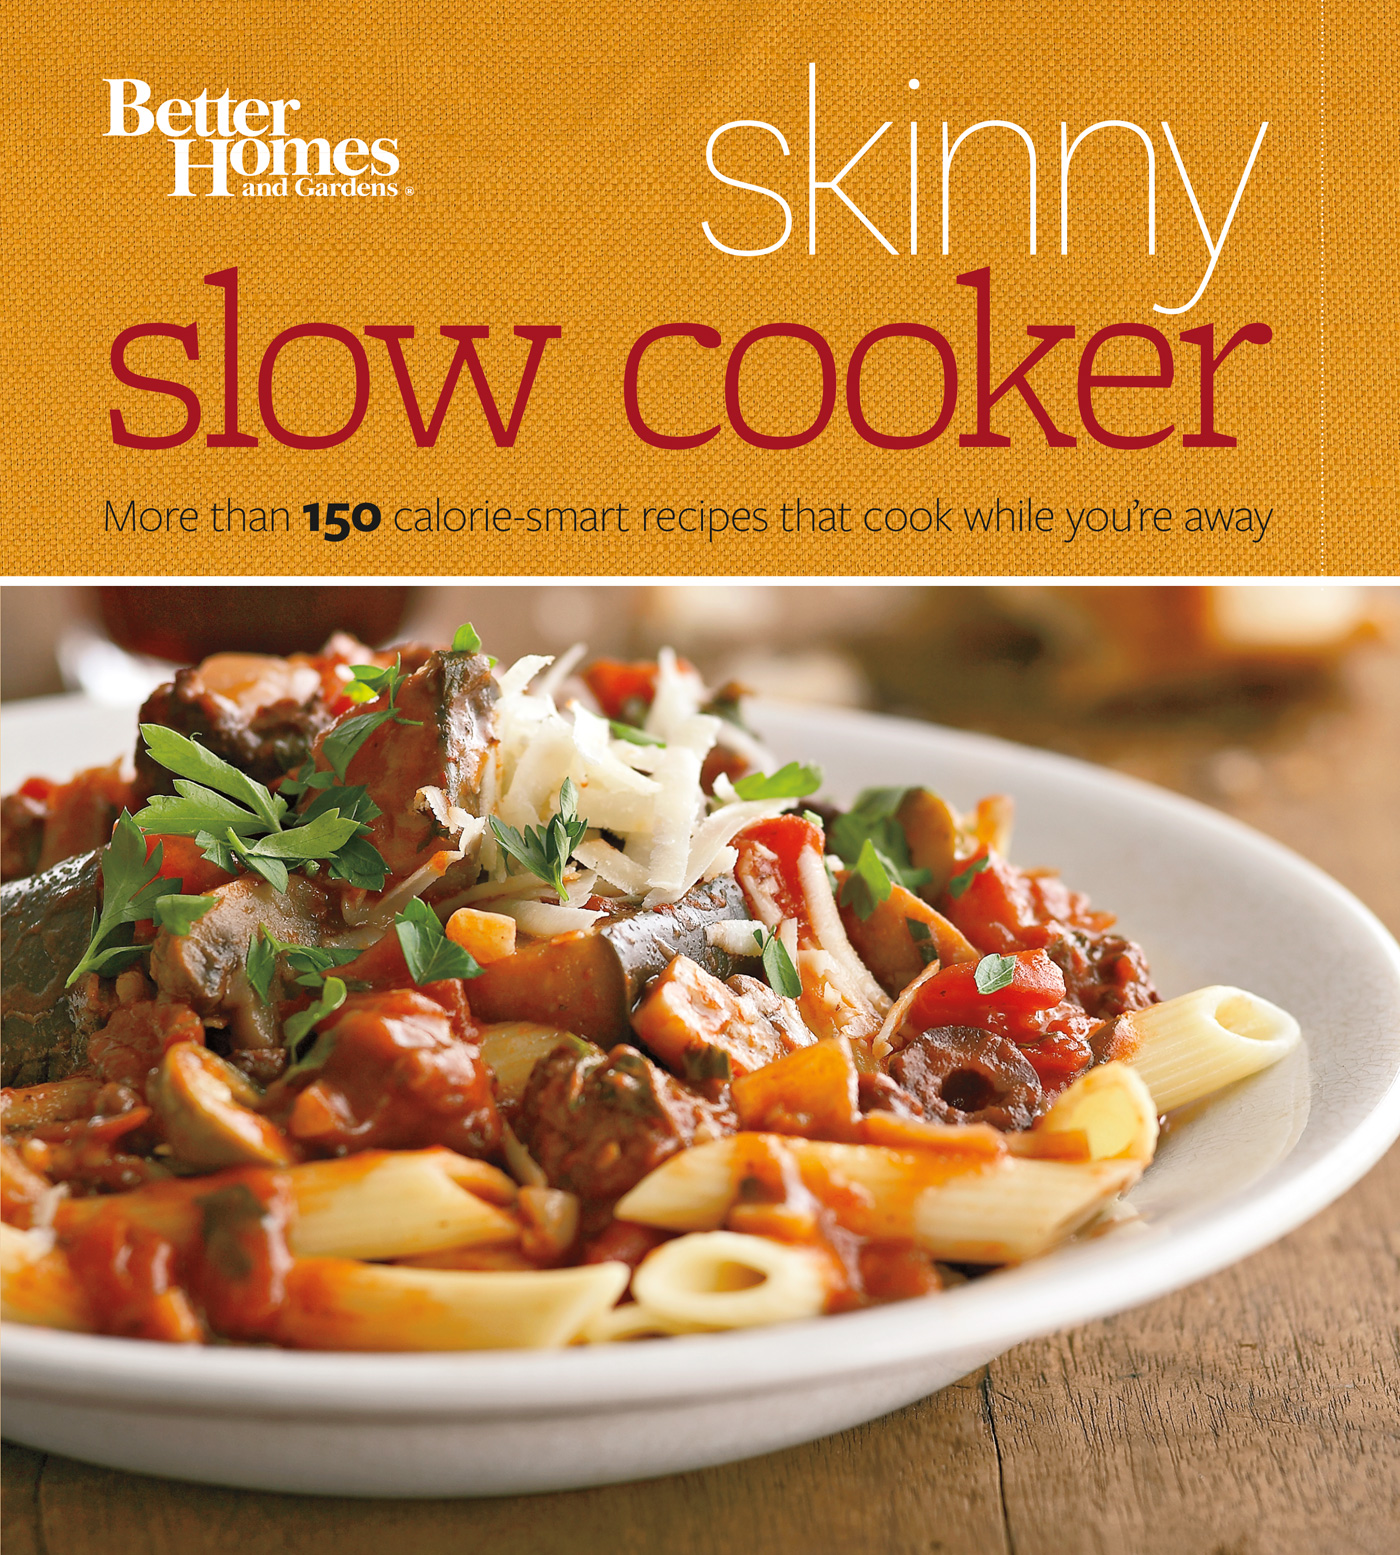 Better Homes and Gardens Skinny Slow Cooker-9781118567845